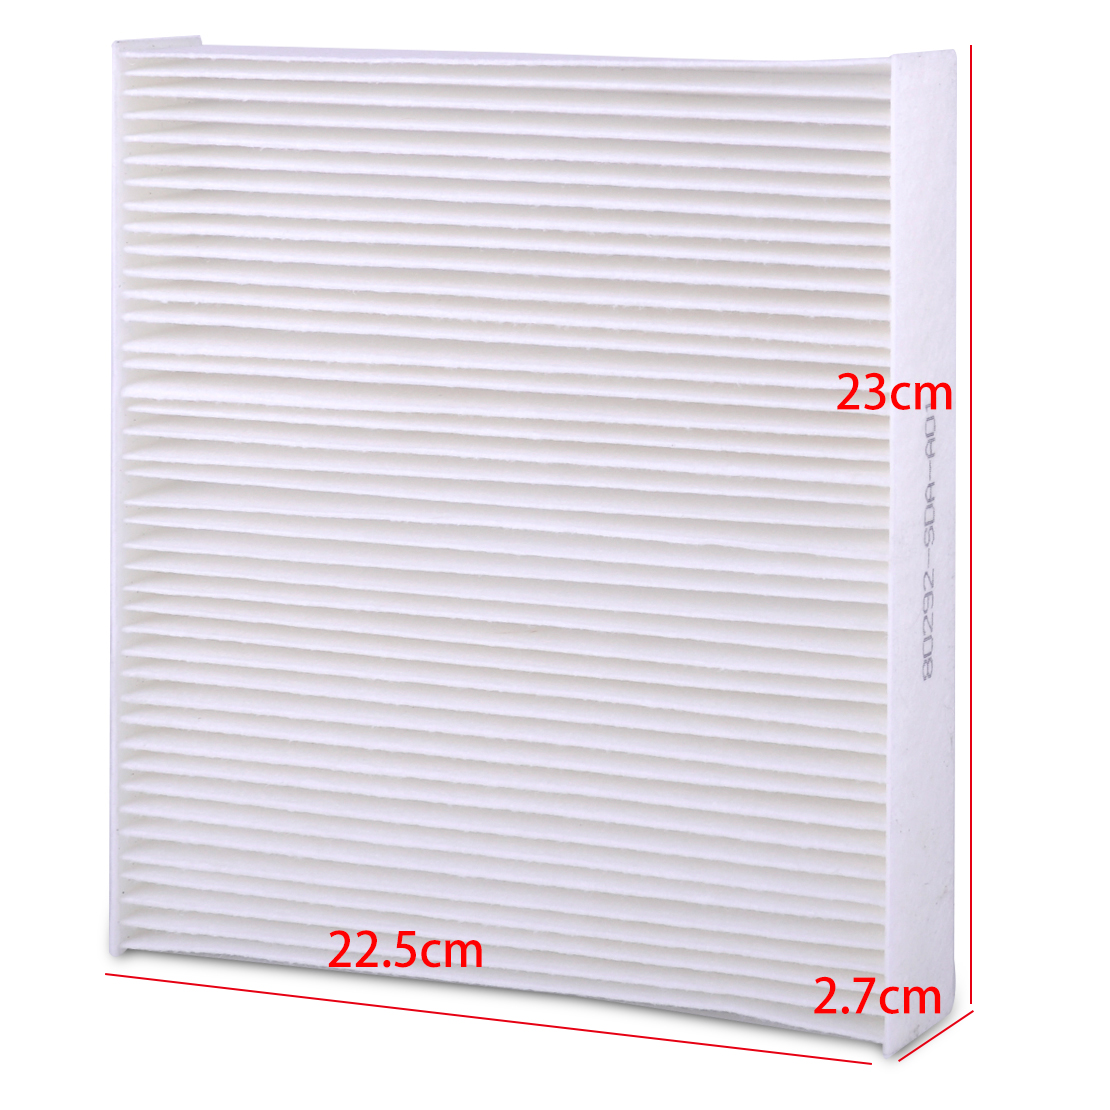 White Cabin Air Filter Fit For Acura CSX MDX RDX Honda